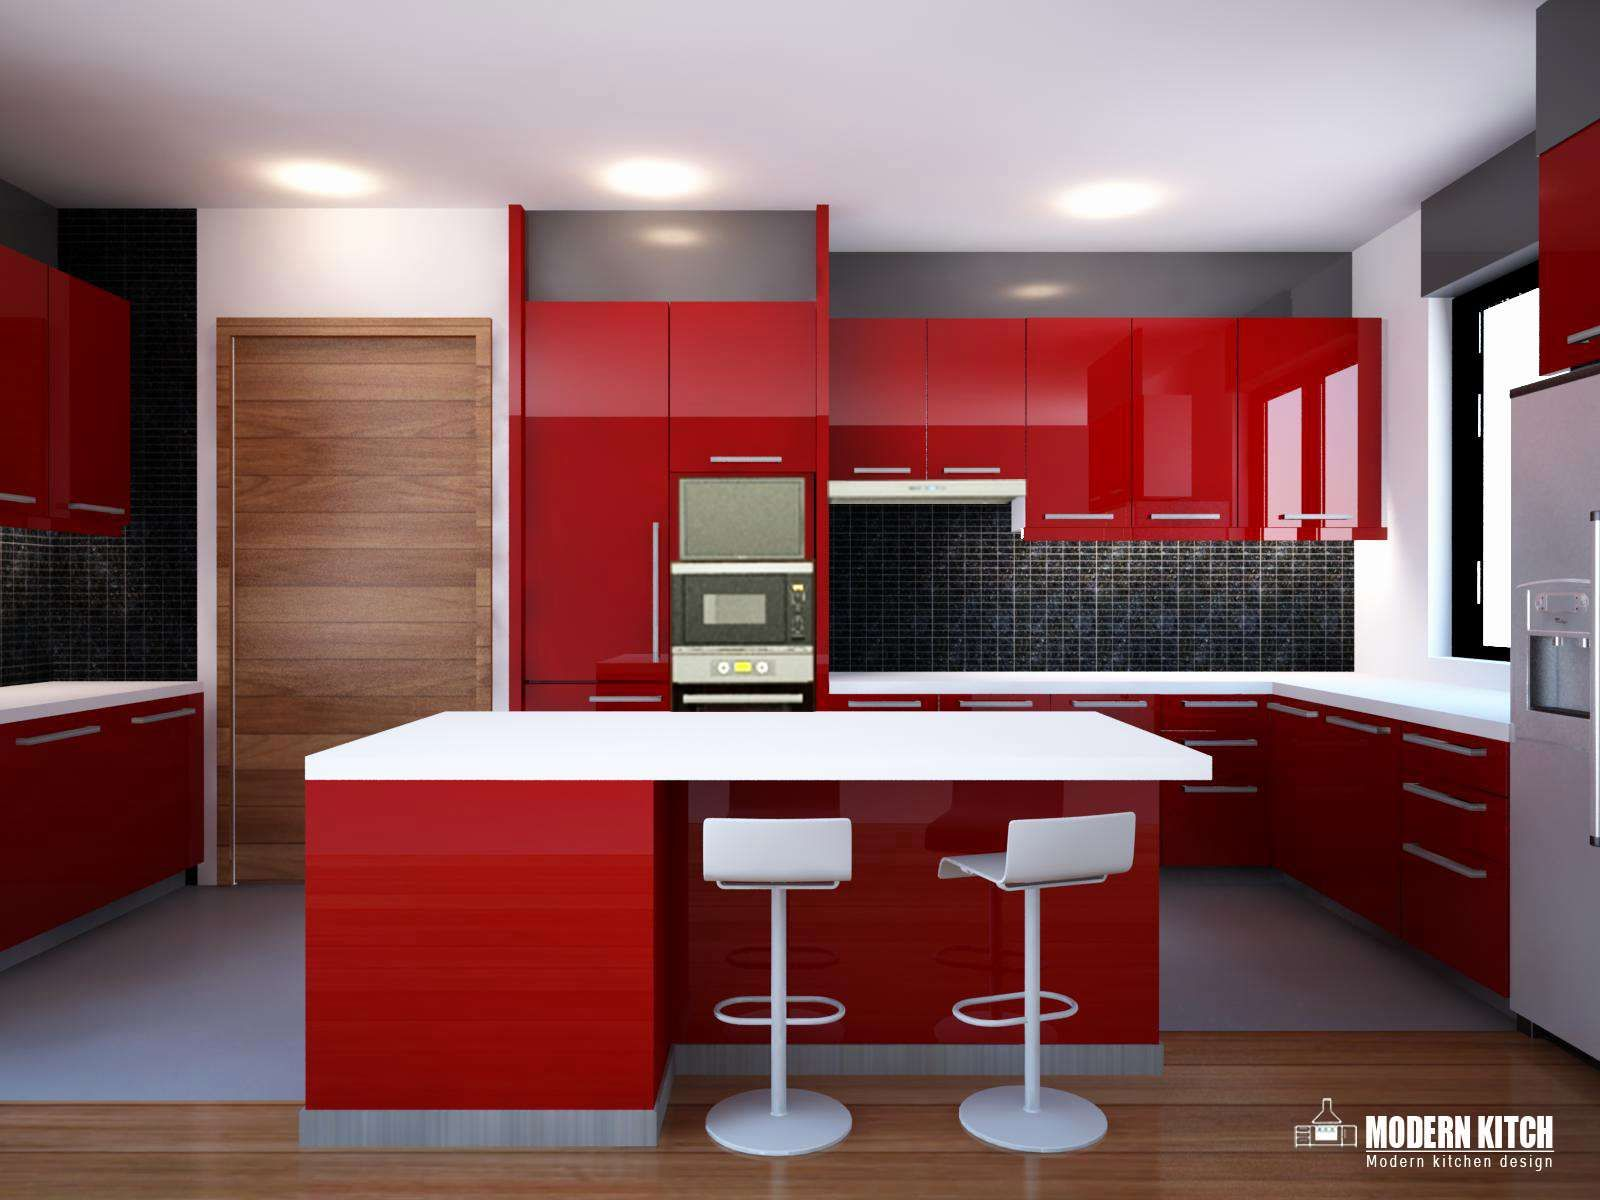 Red Gloss Kitchen Cabinets Best Of Cabinet Red Gloss Kitchen Cabinets Modern High Gloss Kitchen K C R Gloss Kitchen Gloss Kitchen Cabinets High Gloss Kitchen